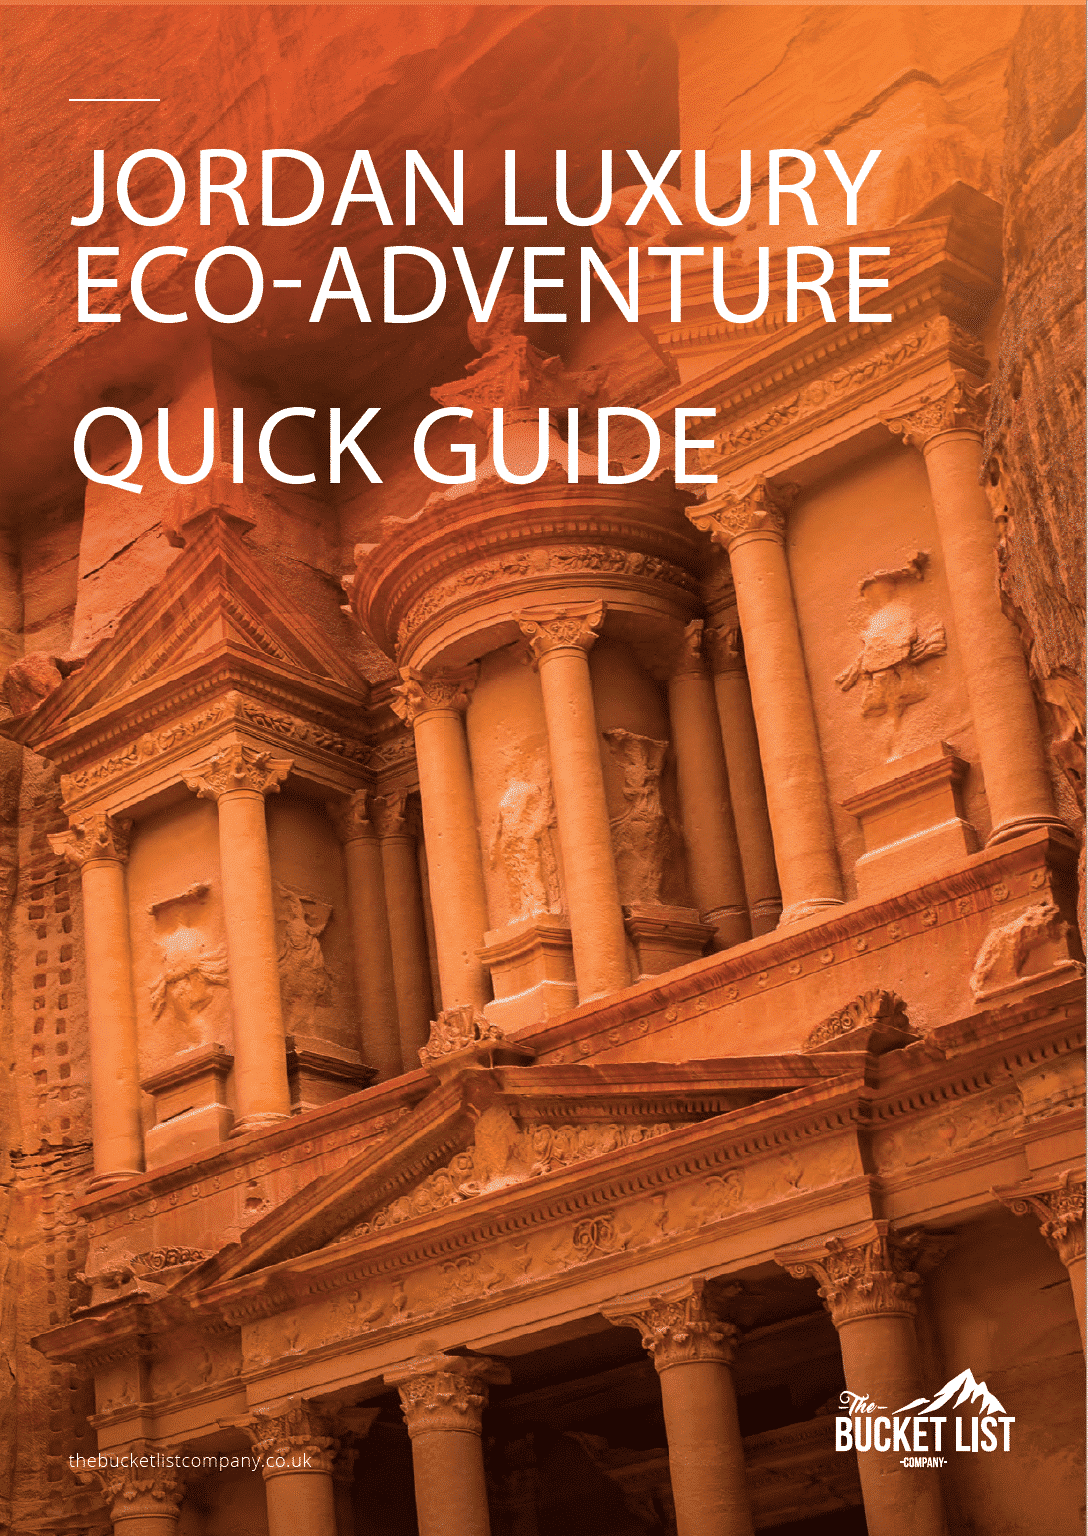 Jordan Luxury Eco-Adventure Free Guide